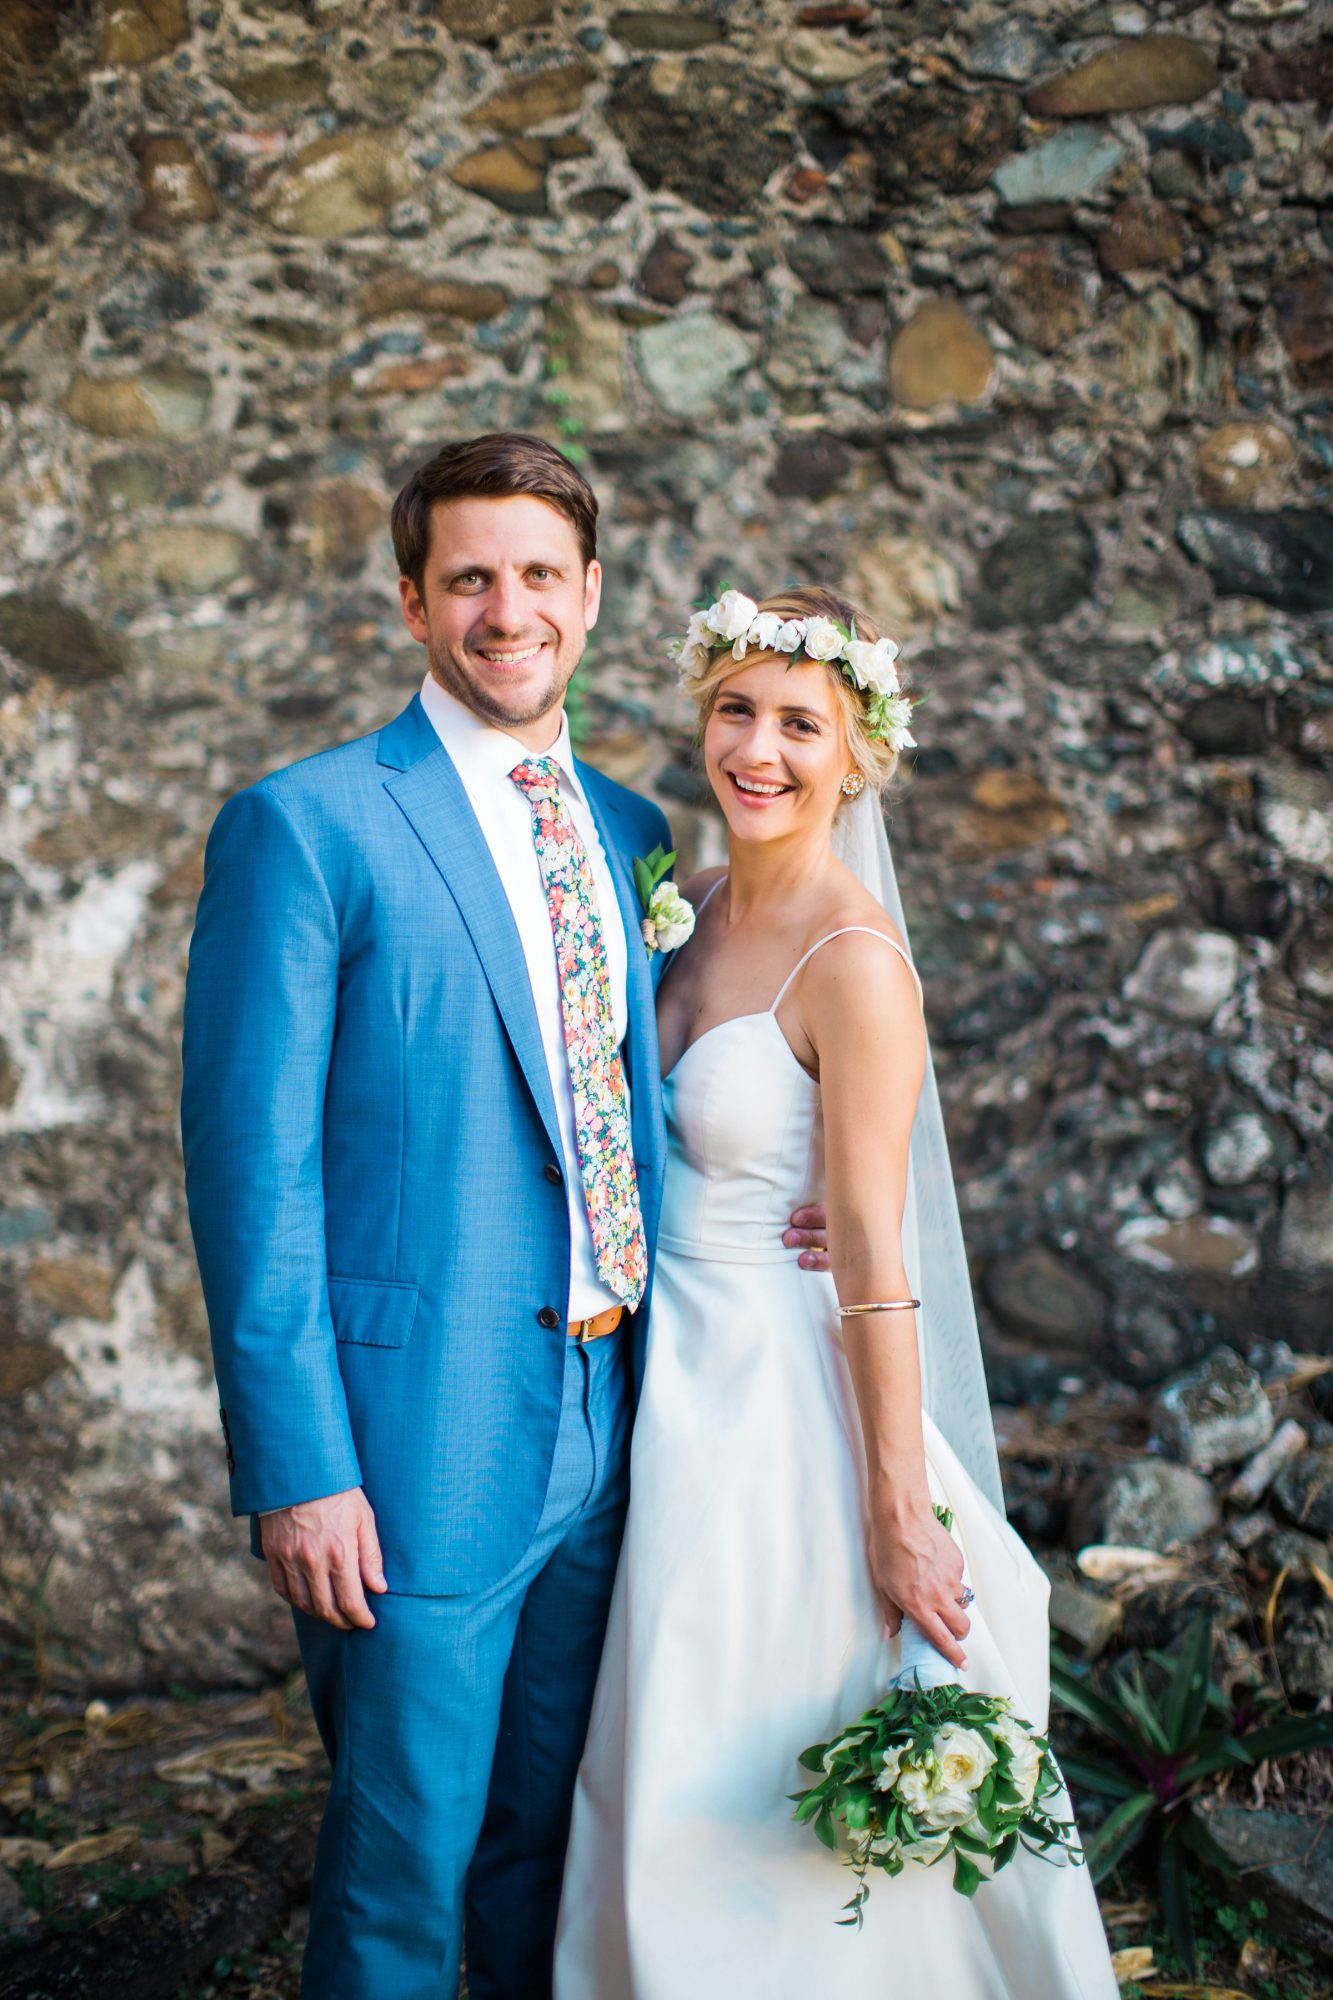 21 Grooms Who Wore Colorful Wedding Suits Martha Stewart,How To Dye Wedding Dress Ivory